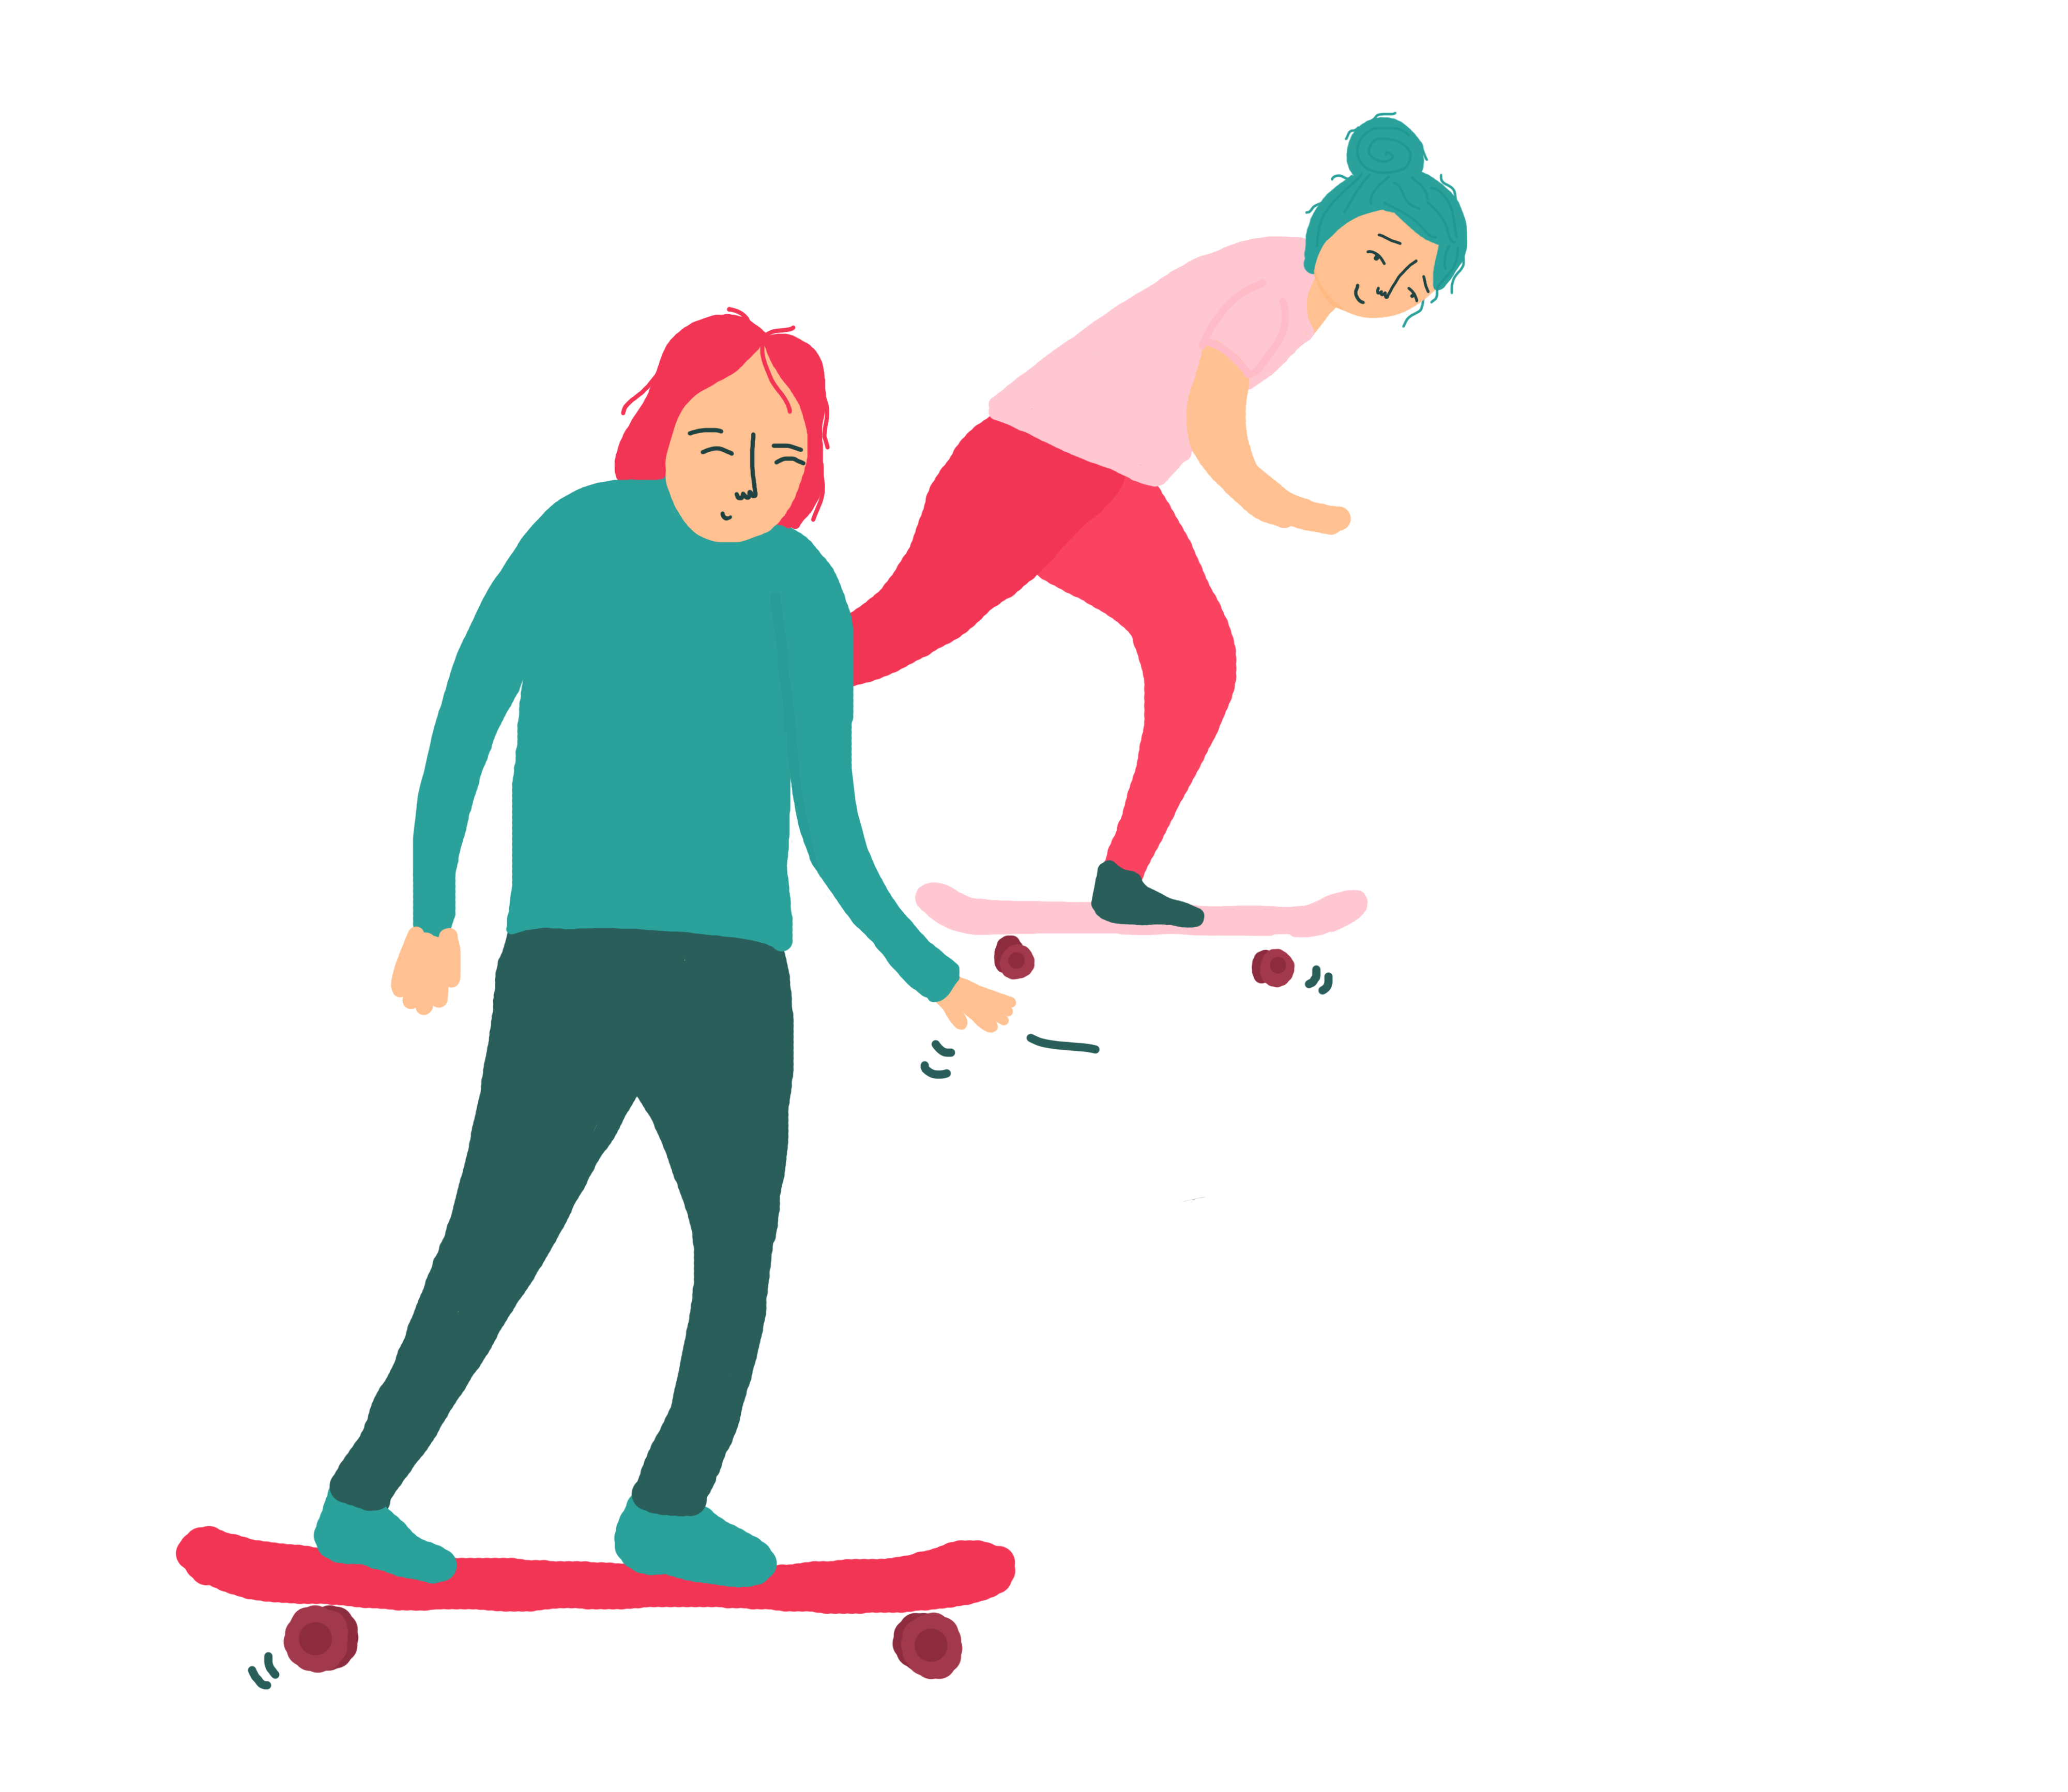 illustratie-skateboarding